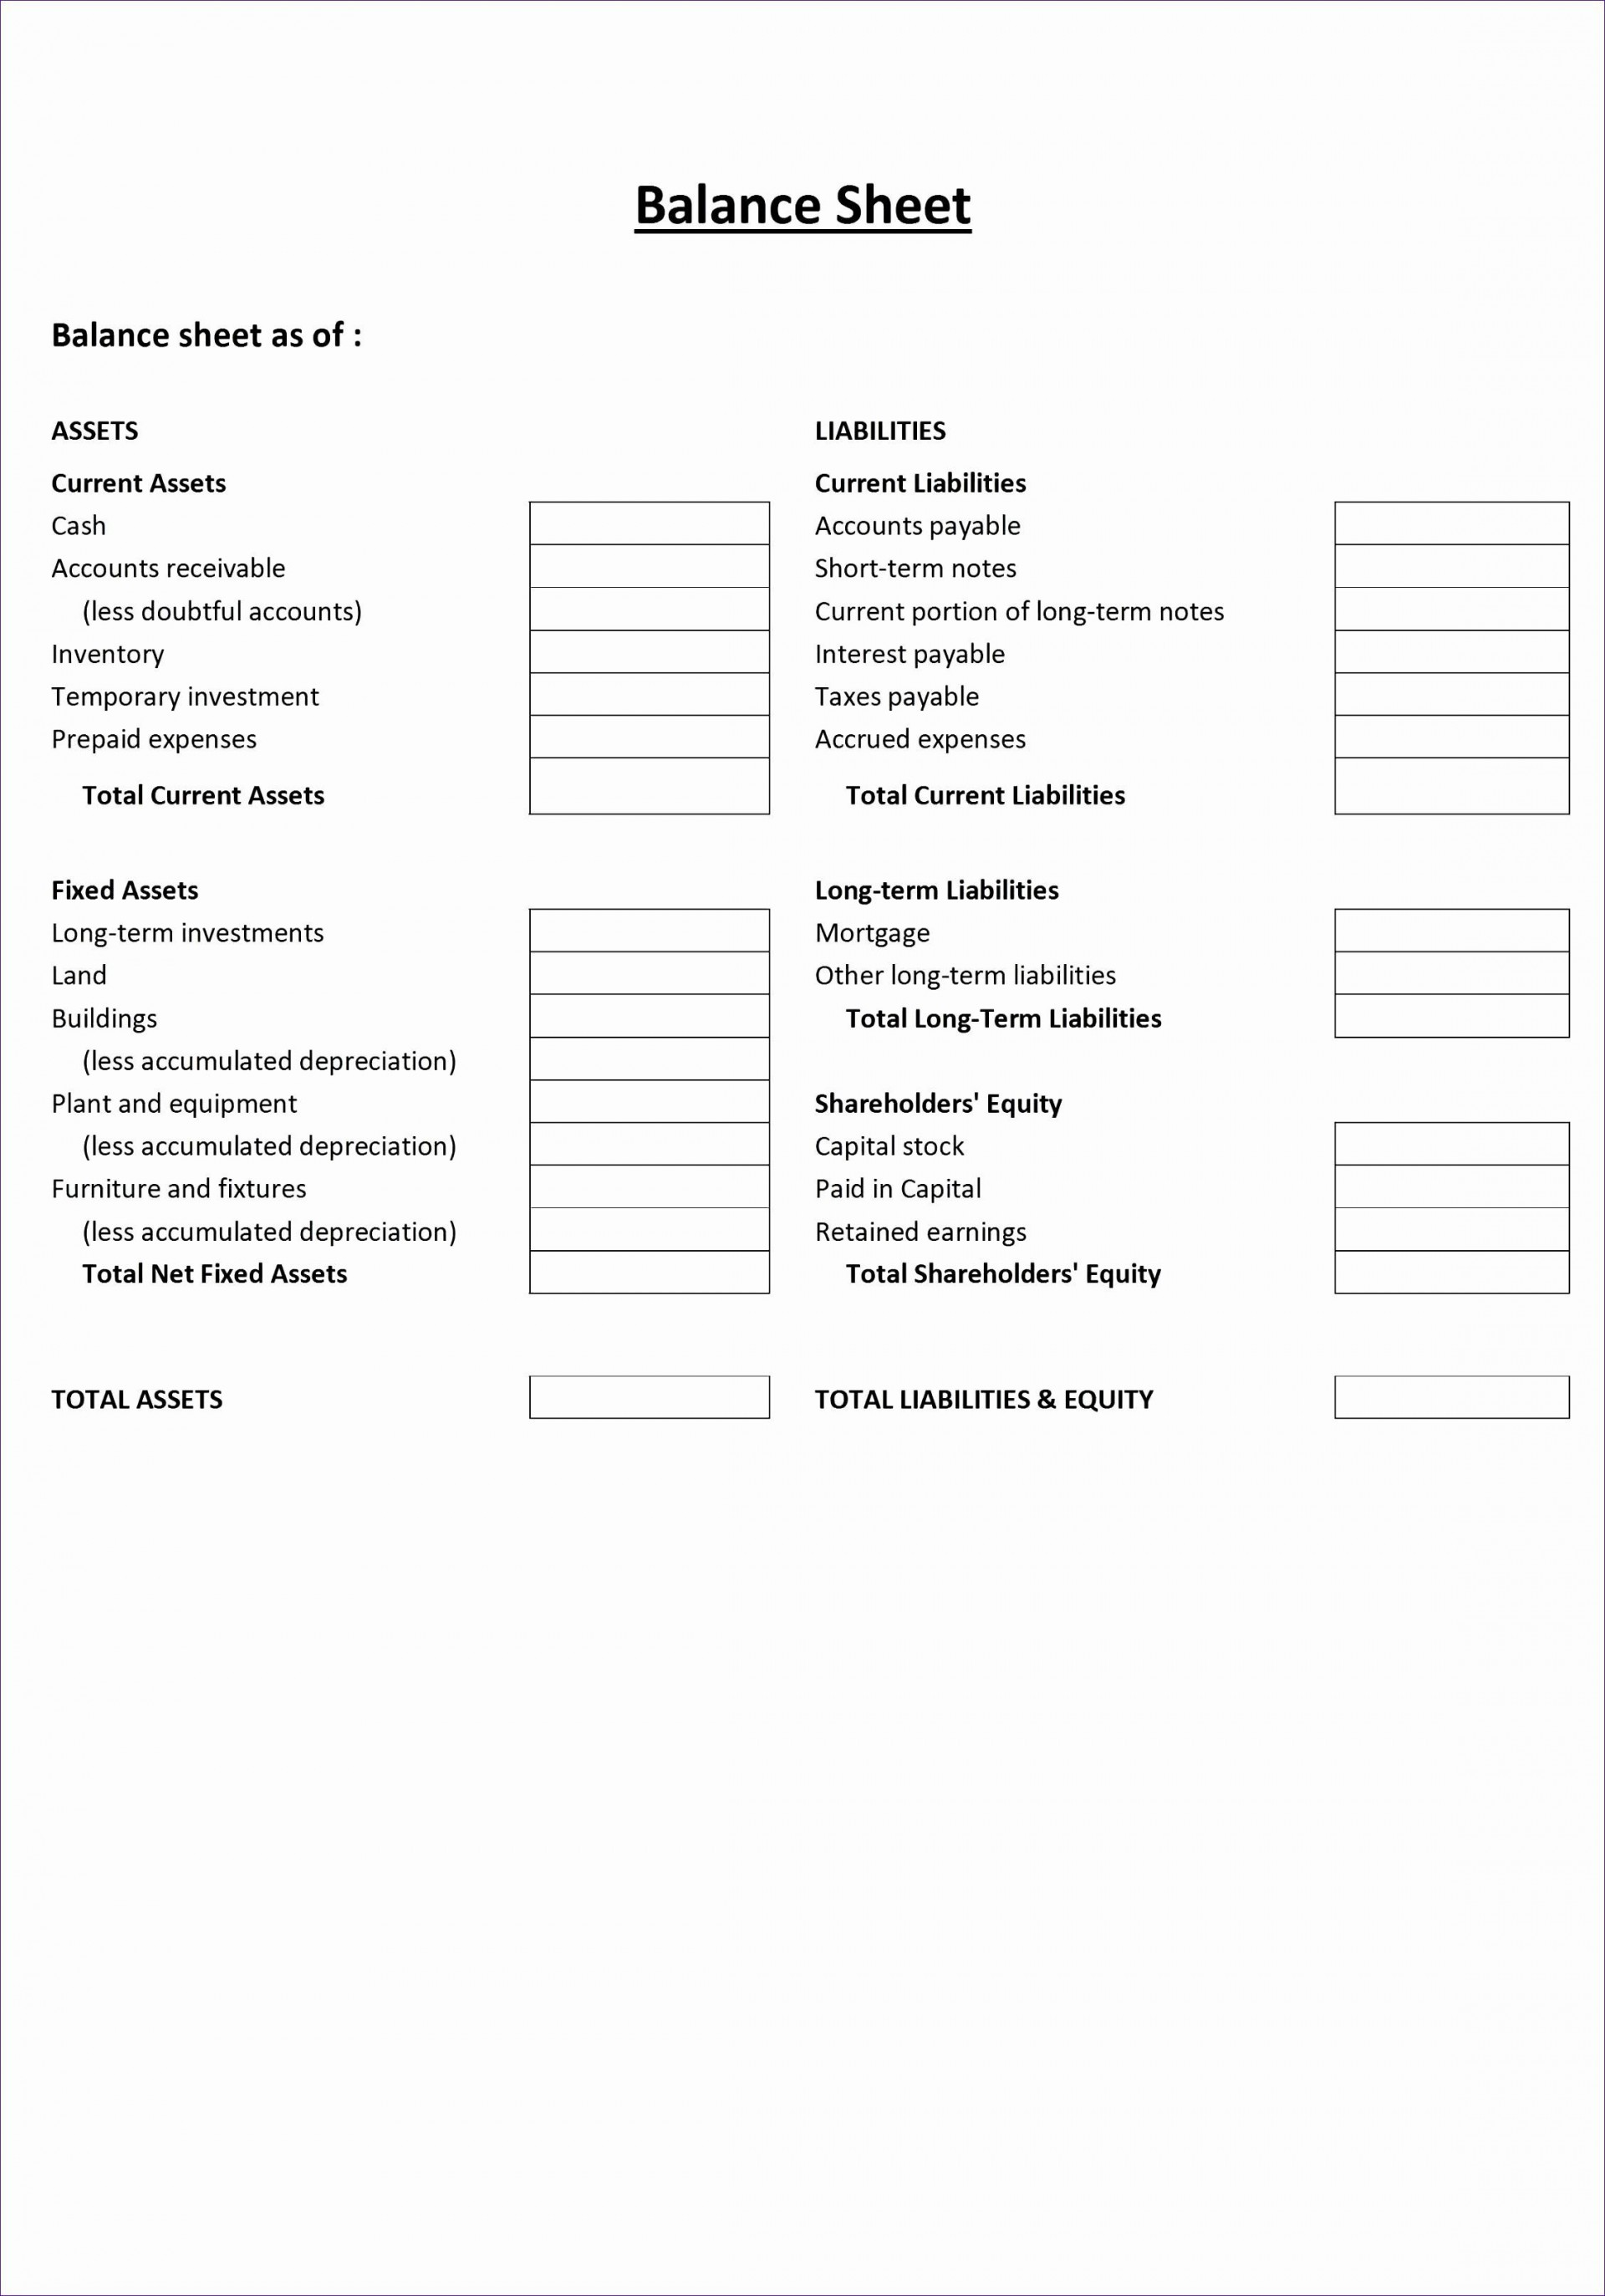 001 Fearsome Simple Balance Sheet Template Photo  Example For Small Busines Sample A Church1920